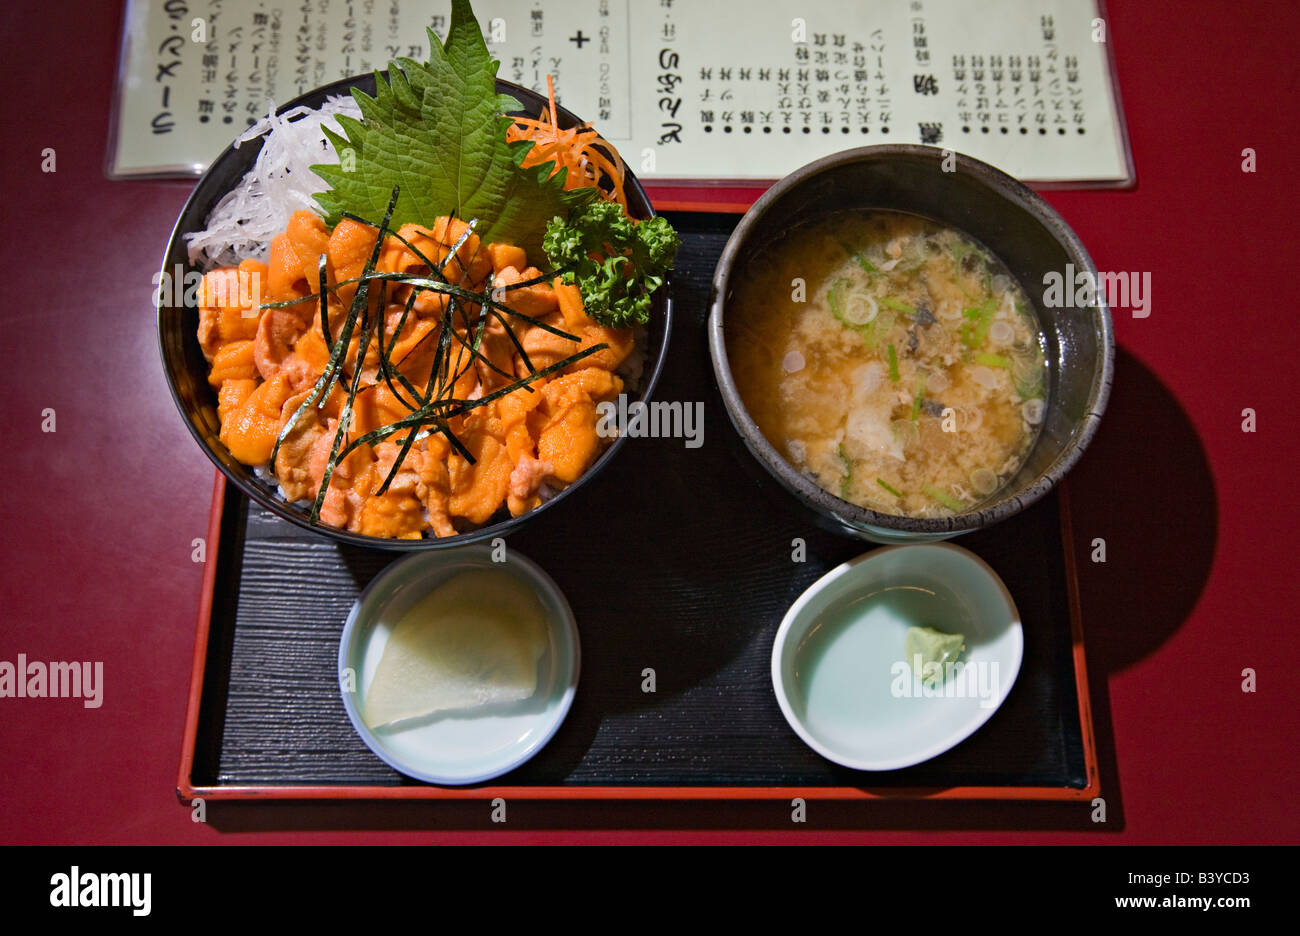 Uni Donburi and Miso Soup - Stock Image